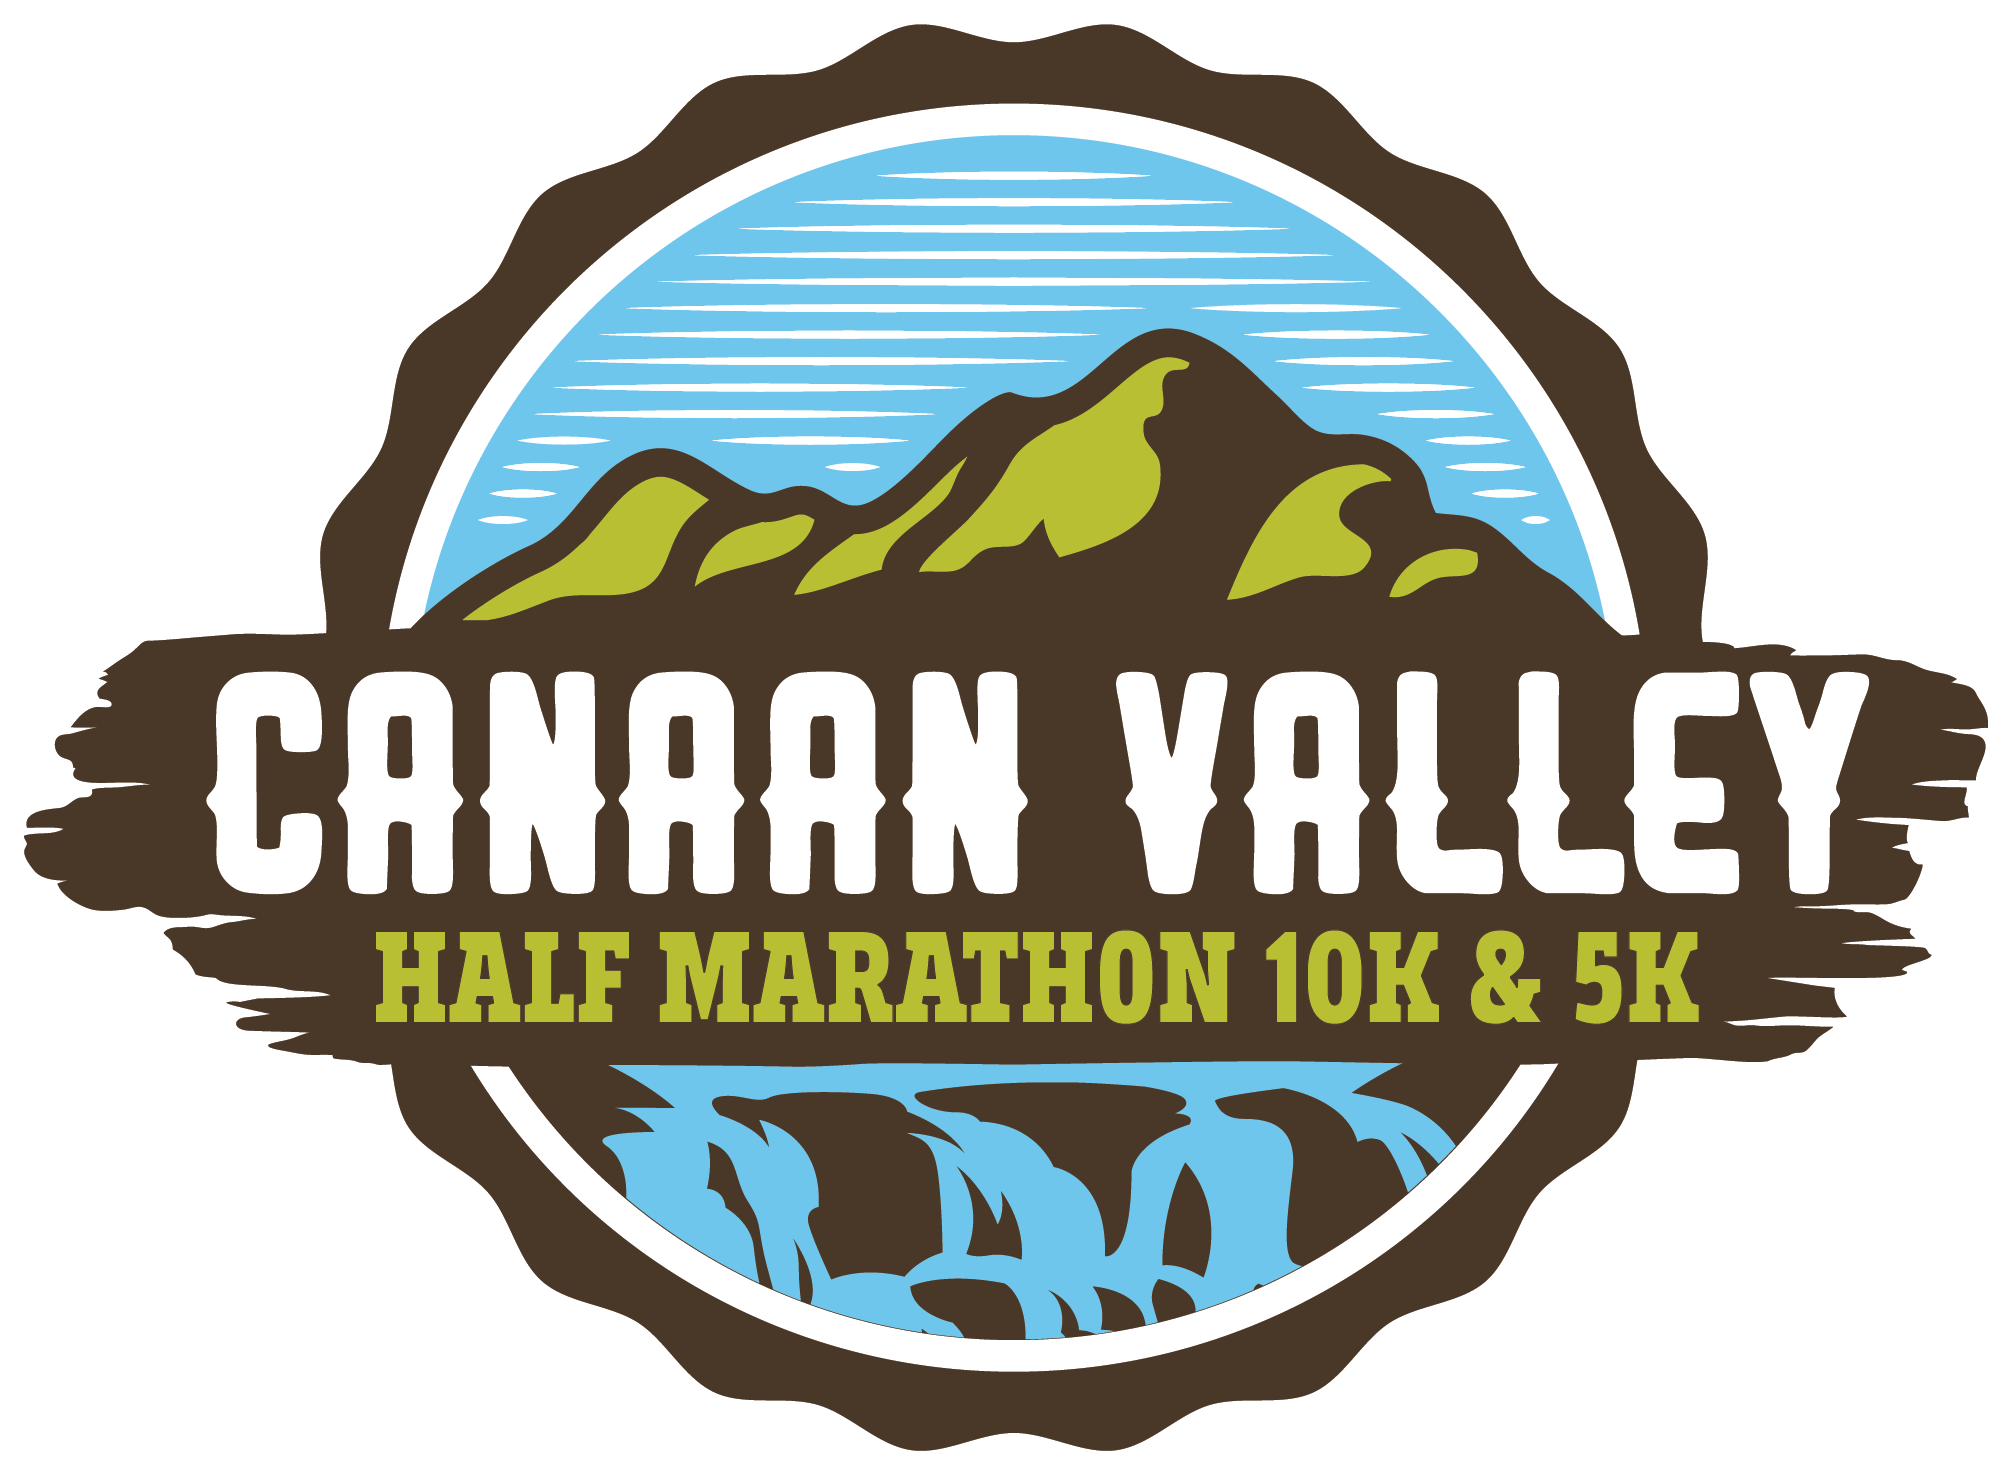 Canaan Valley Half Marathon Launches Blog and Free Running Tools to Help Runners